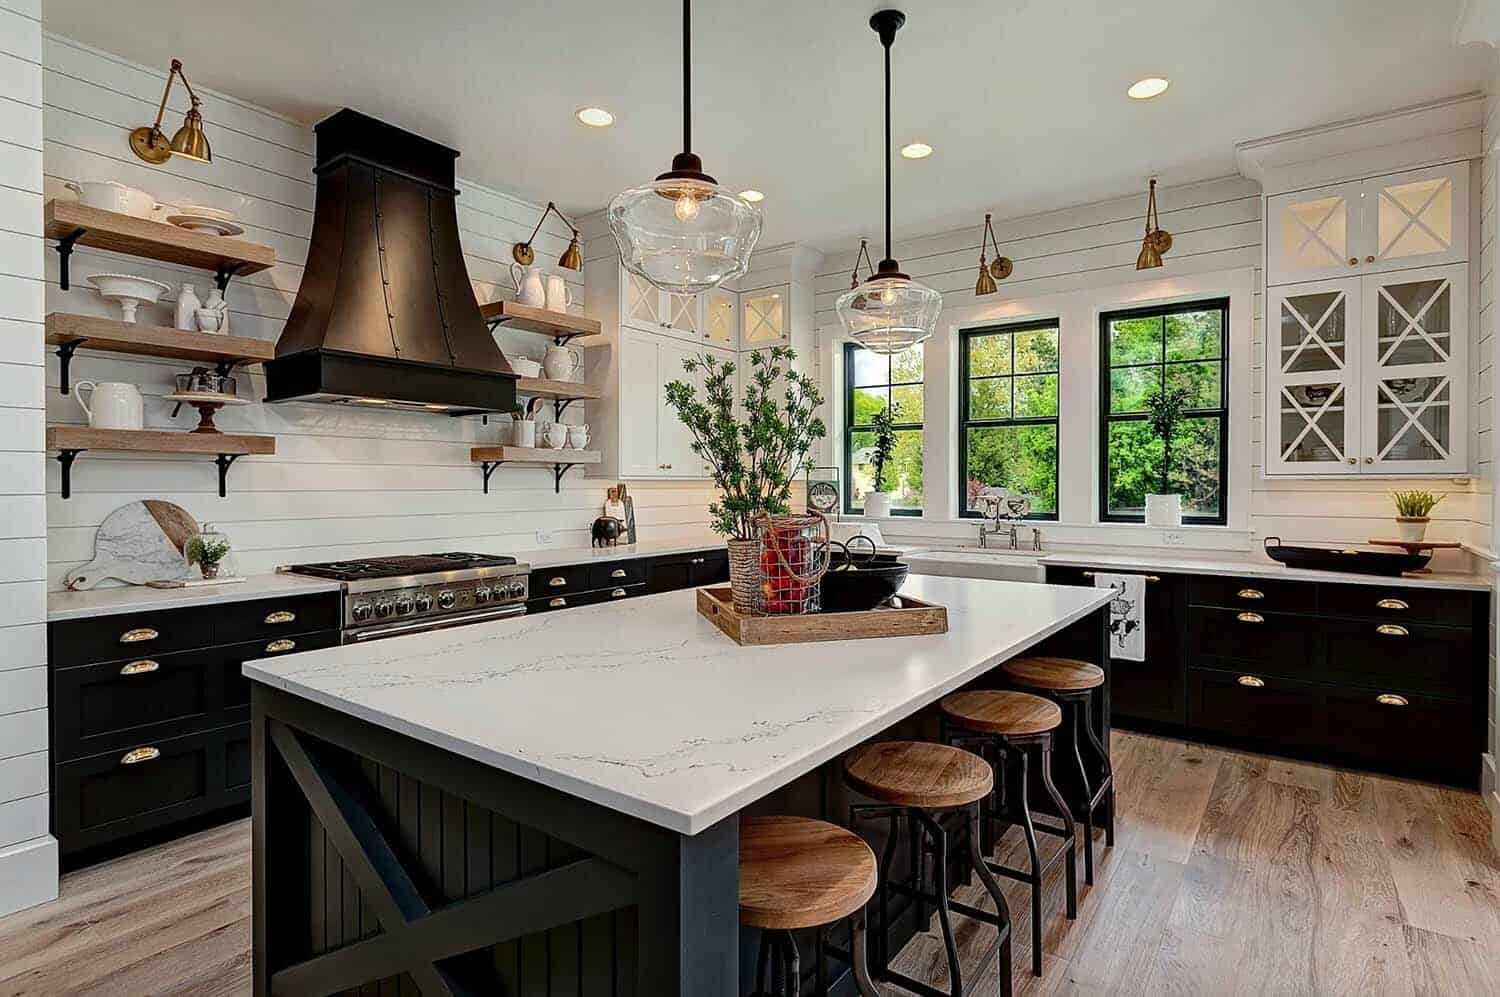 farm style kitchen renovations on a budget 35 43 amazingly creative and stylish farmhouse ideas